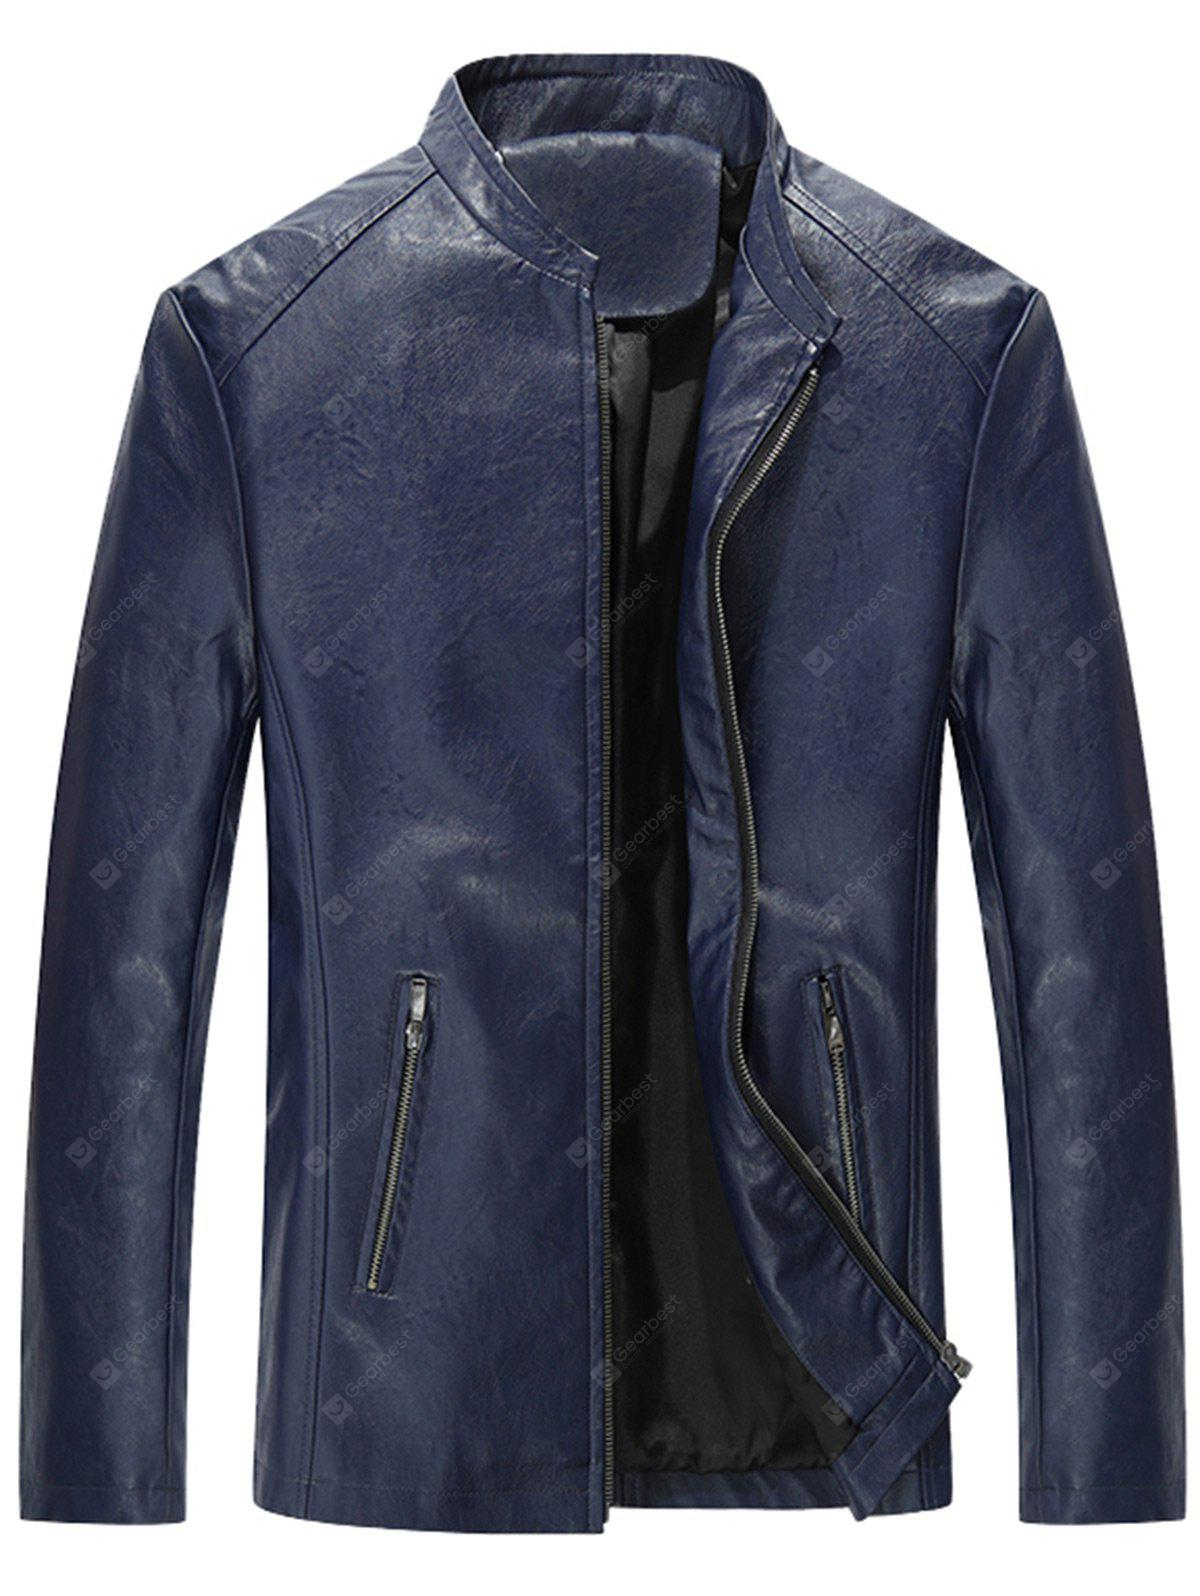 Stand Collar Zip Up Slim Fit PU Leather Jacket